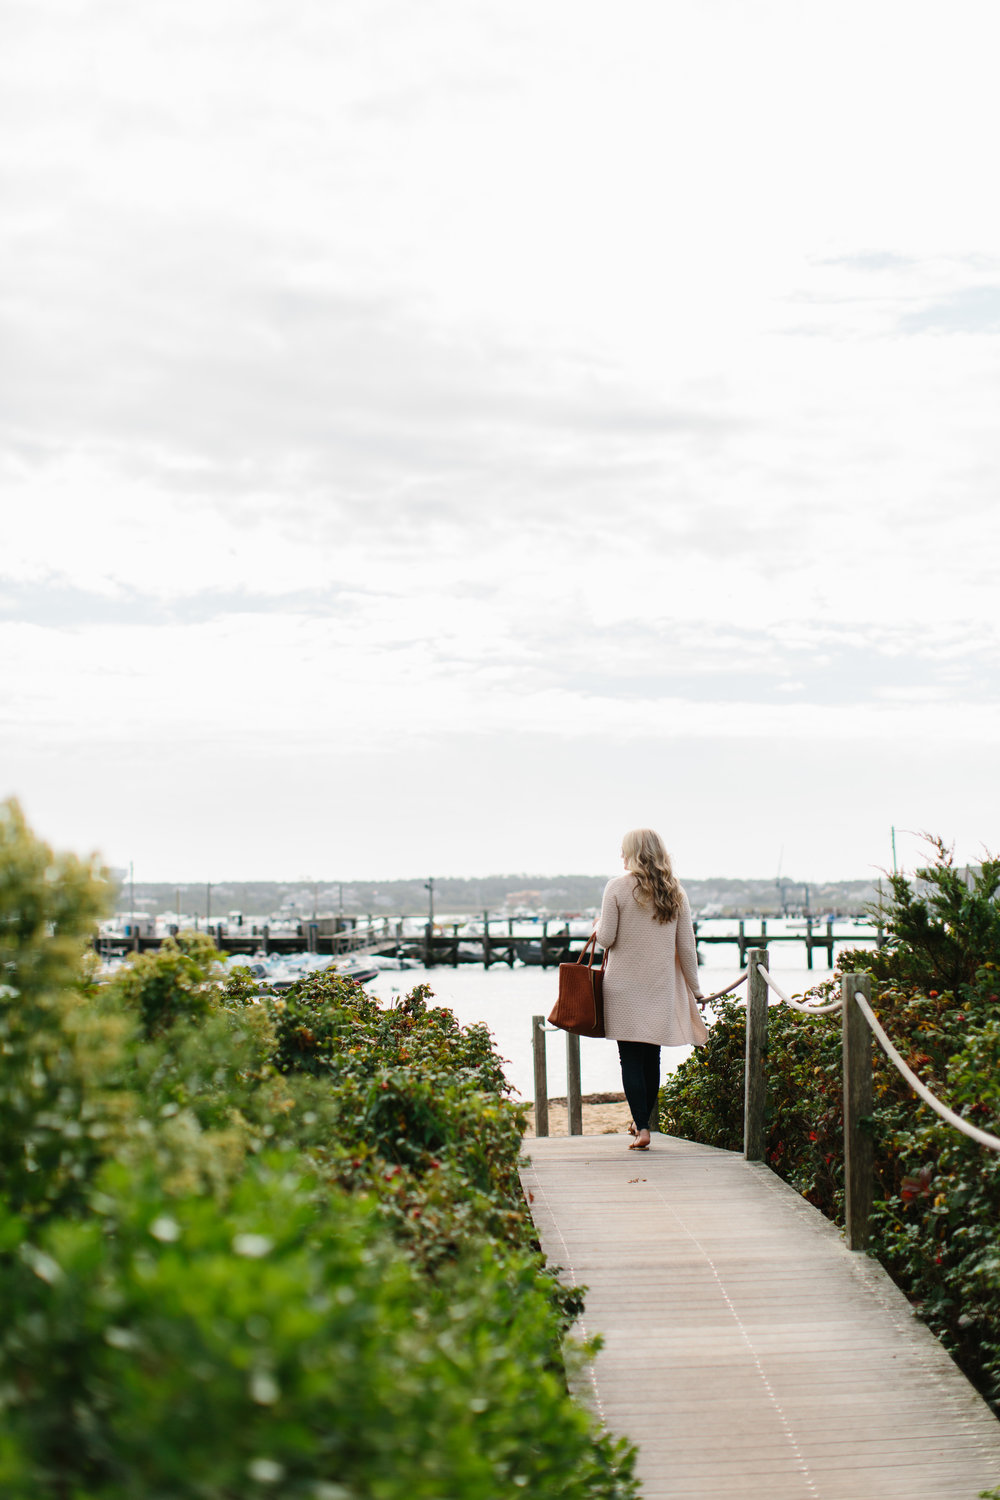 Fall on Nantucket at Harborview Nantucket with Abby Capalbo | Photography: Abby Capalbo